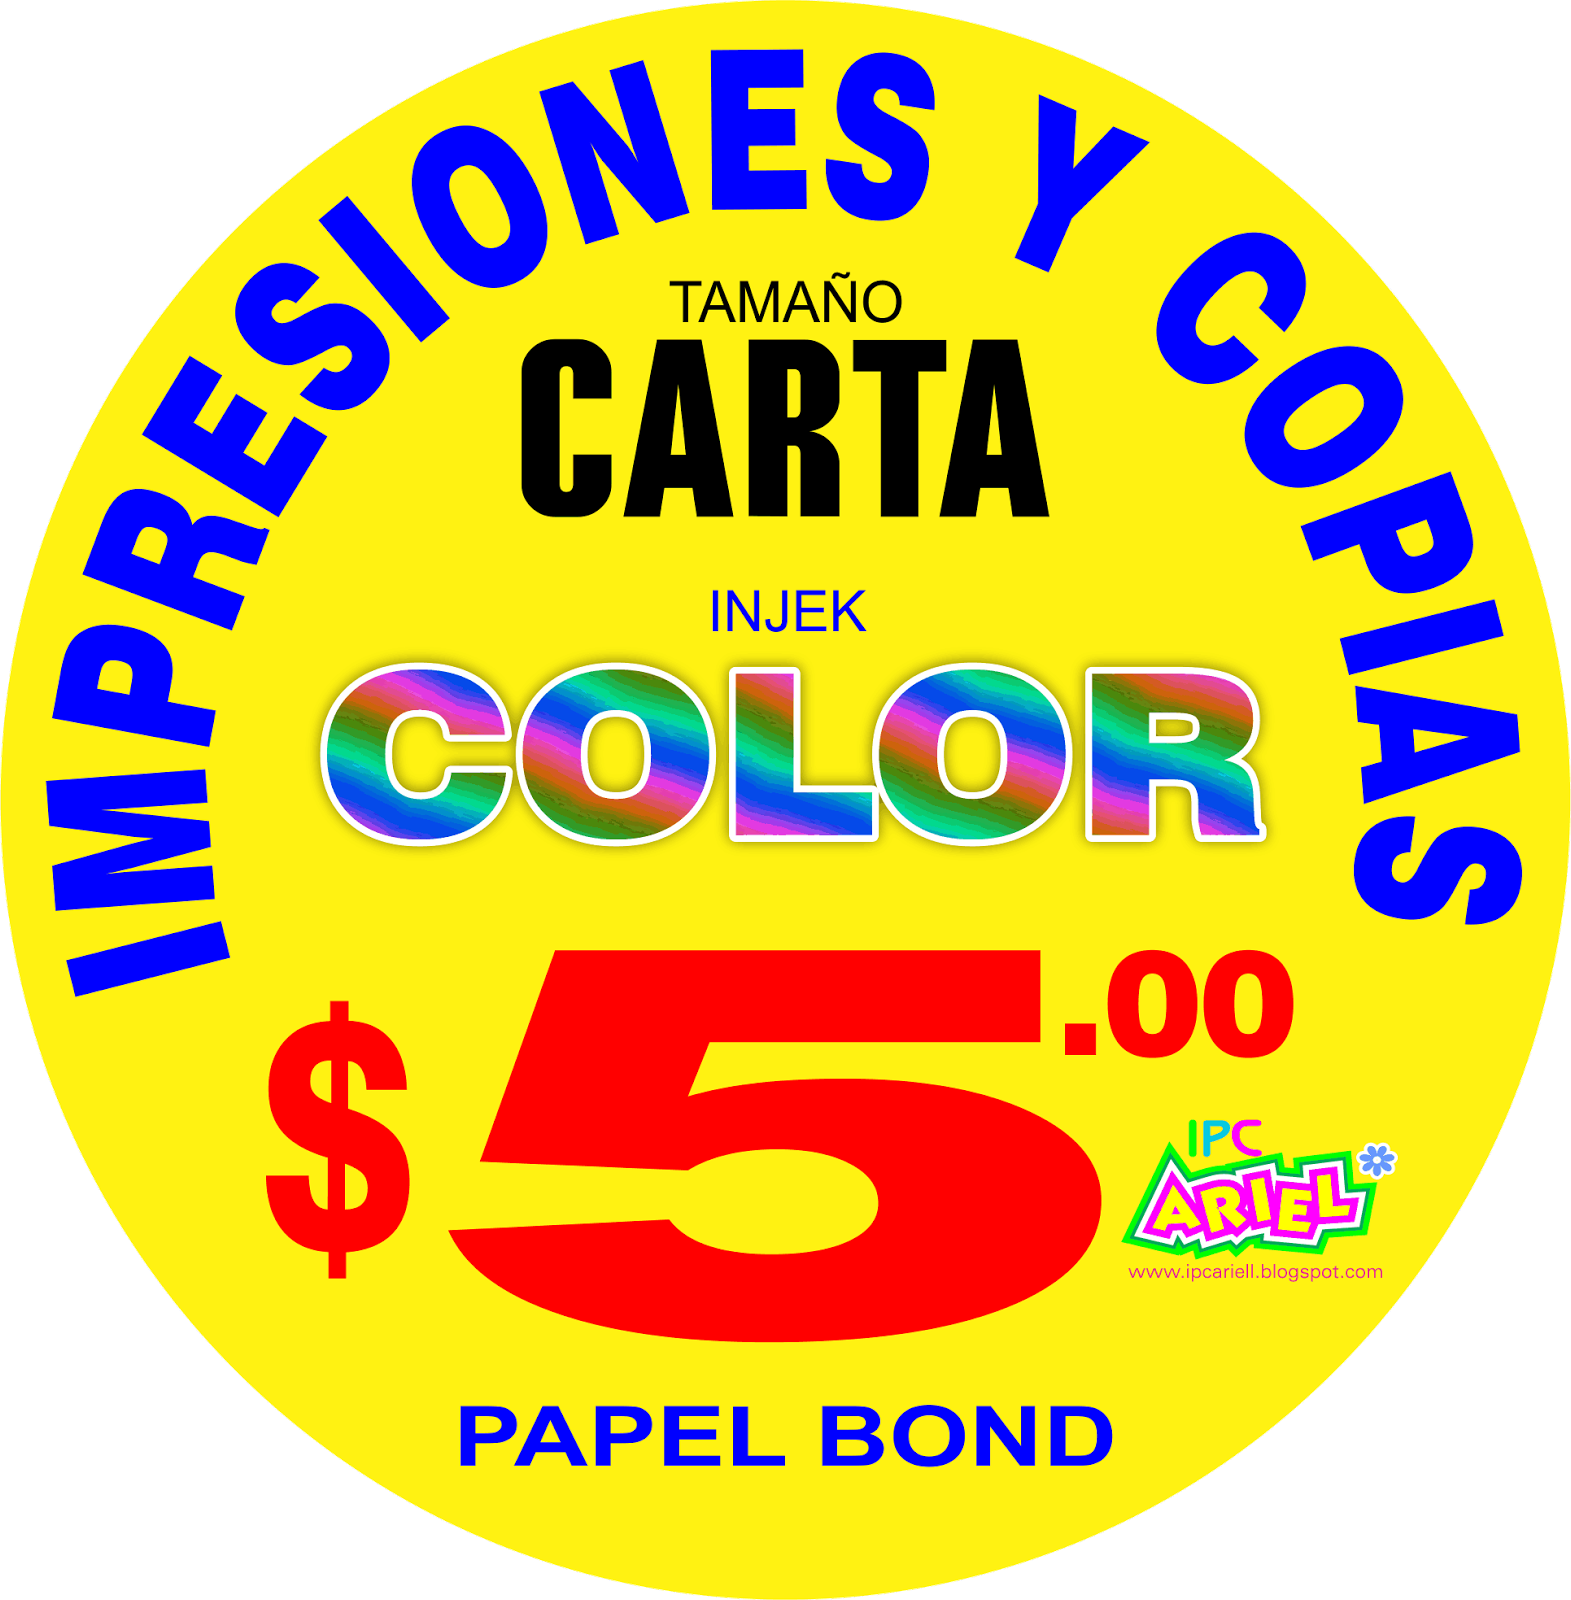 IMPRESIONES A COLOR INJEK